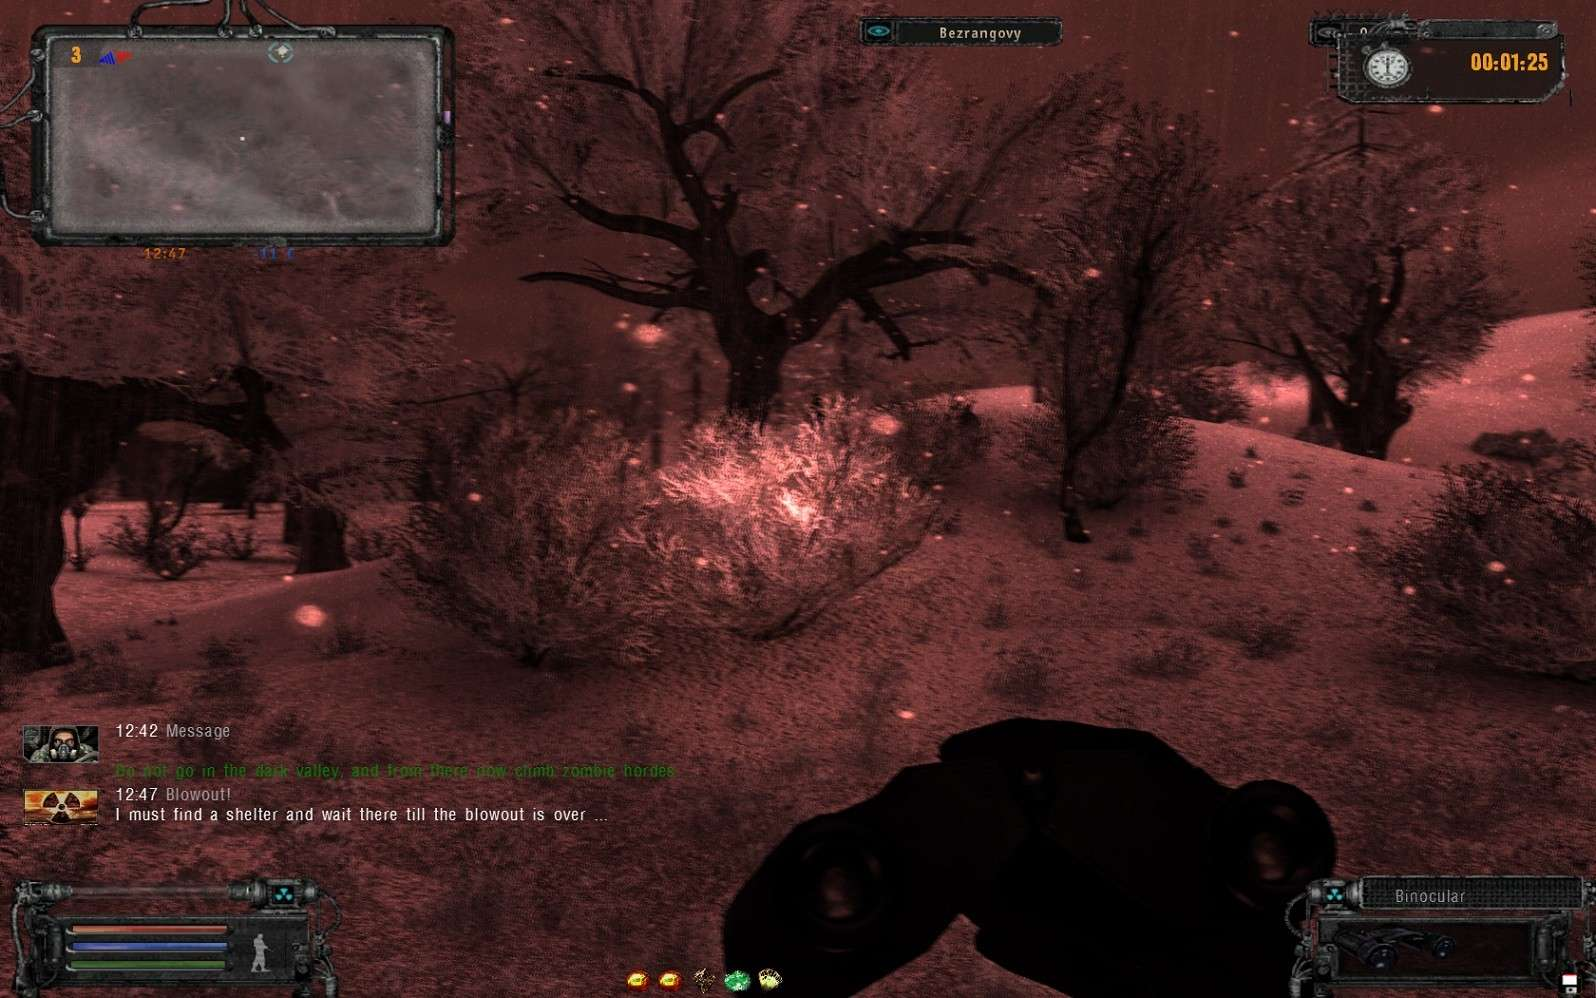 Nature Winter 2.3 Black Edition (eng 1.01 Deluxe) Images Gallery! Serie:1# G10